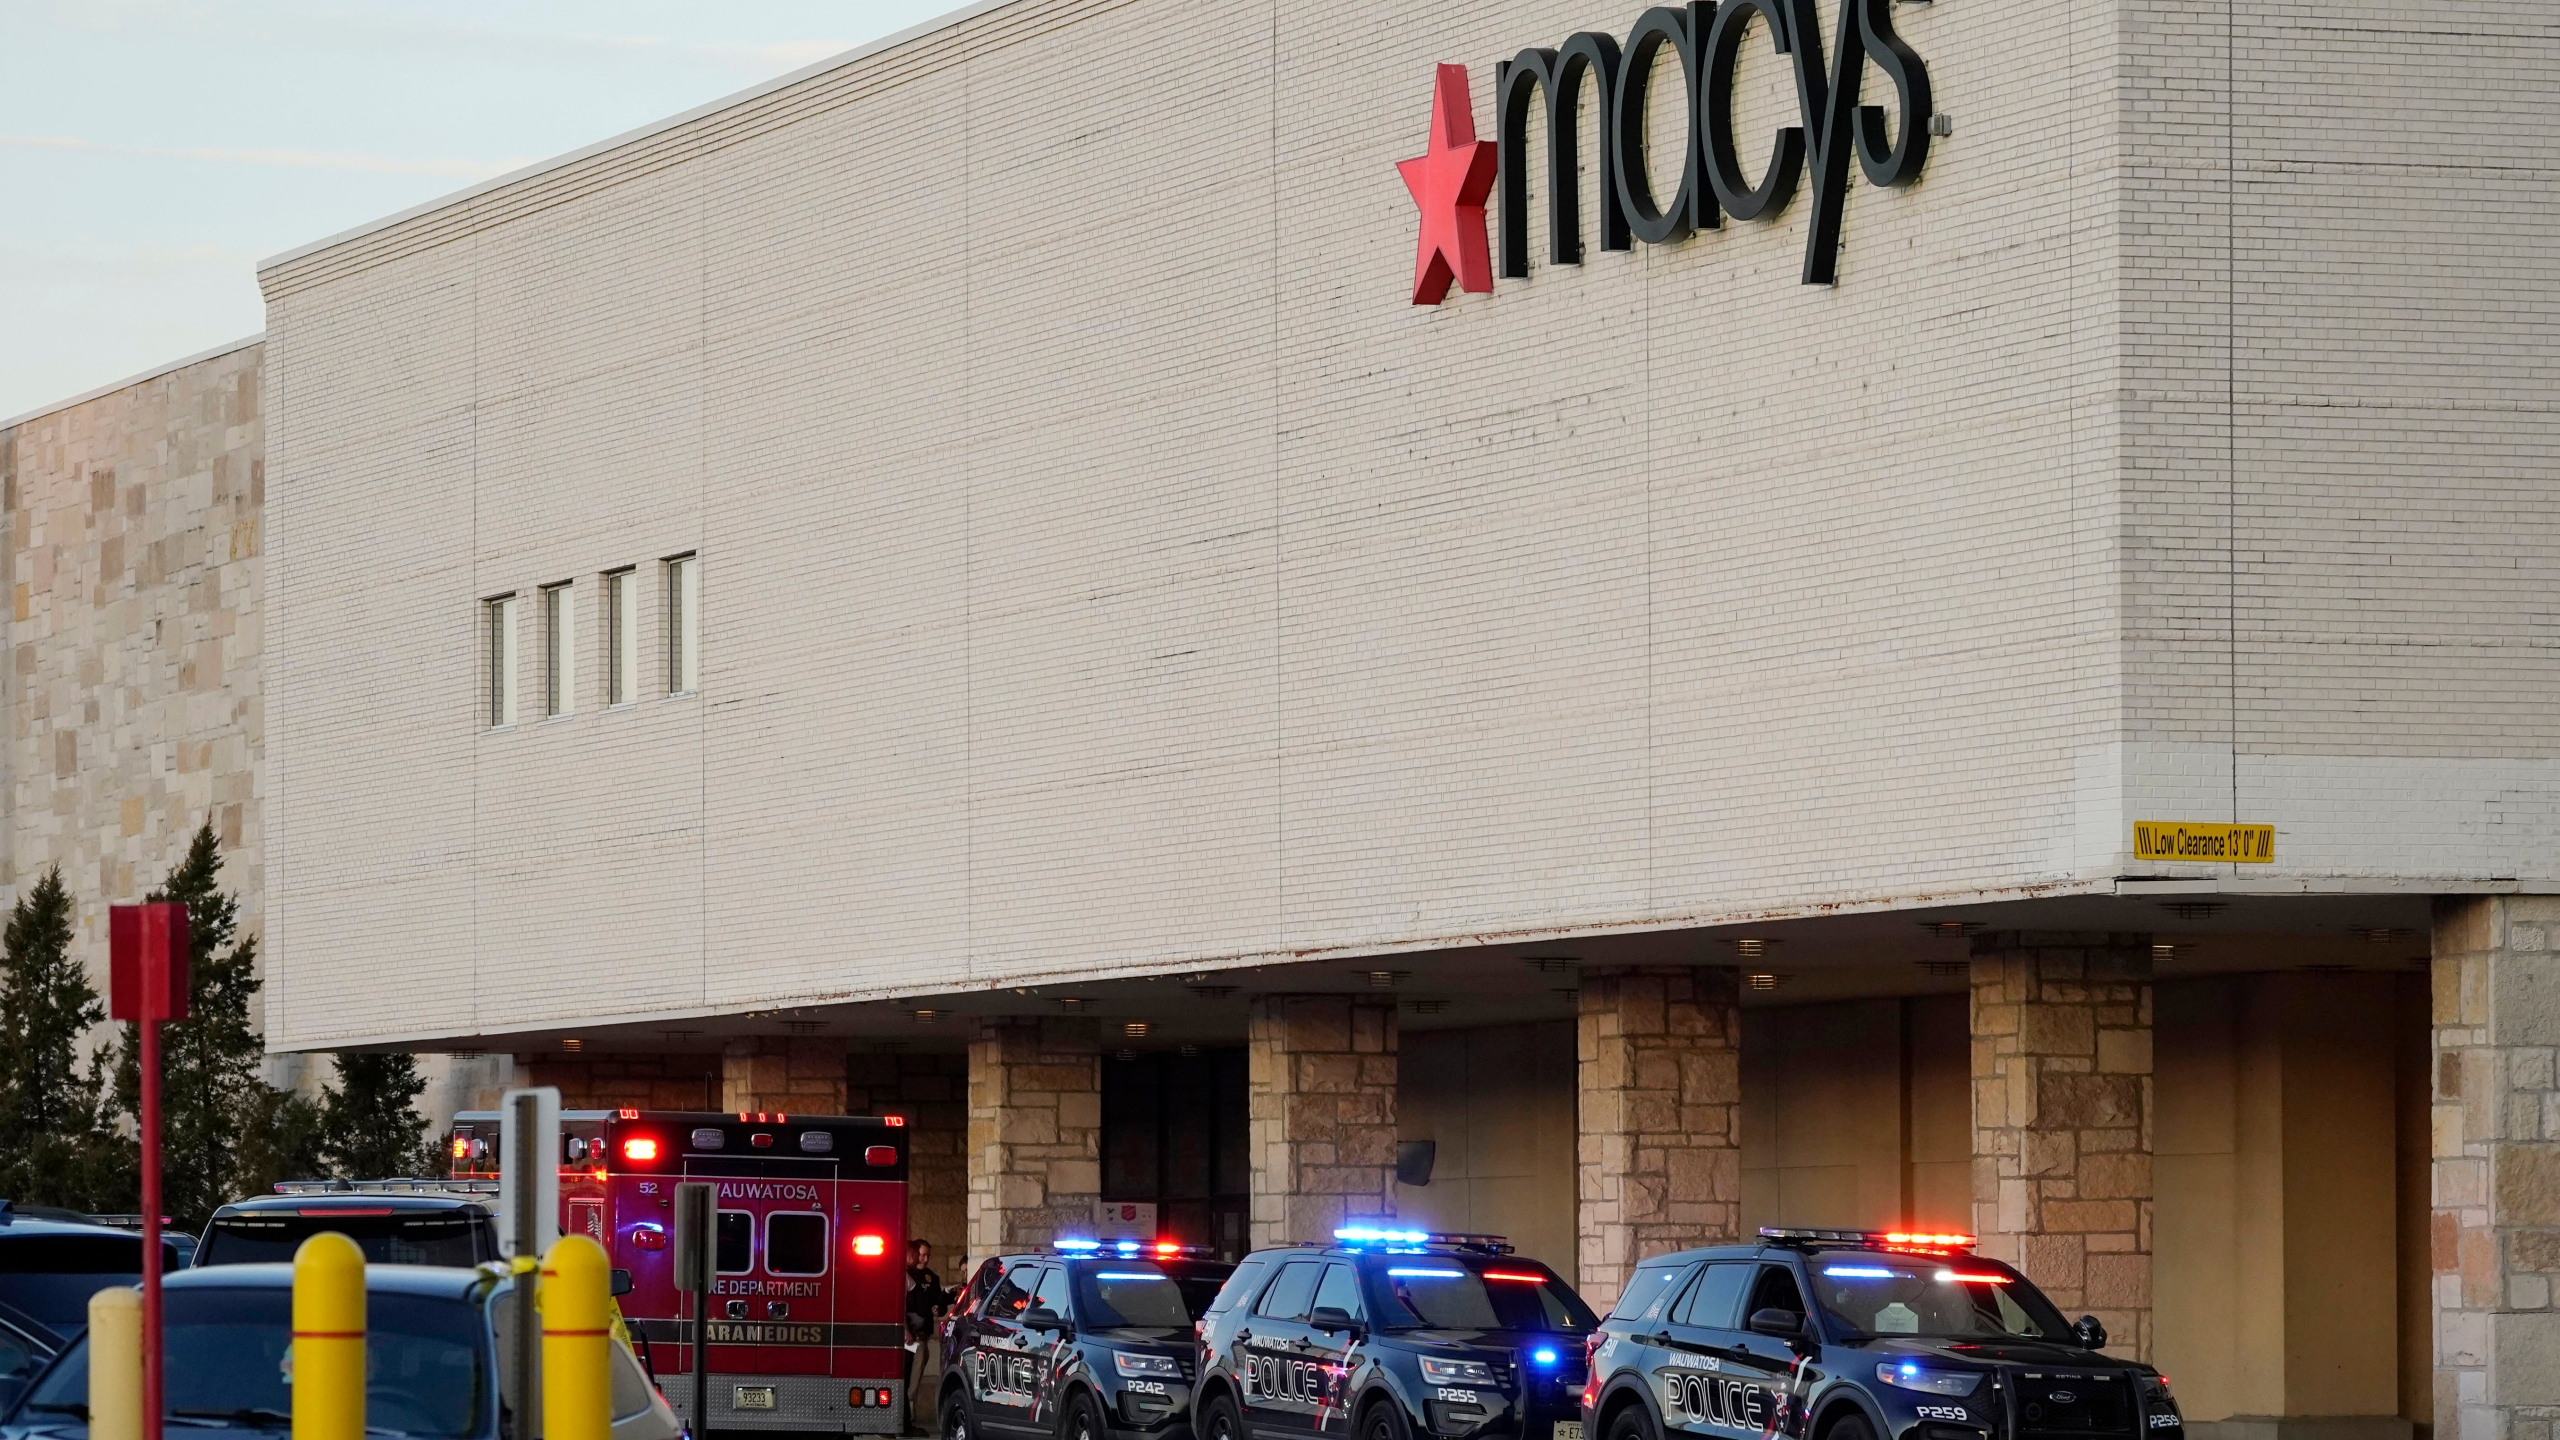 Police investigate a shooting at the Mayfair Mall on Nov. 20, 2020, in Wauwatosa, Wis. (AP Photo/Nam Y. Huh)